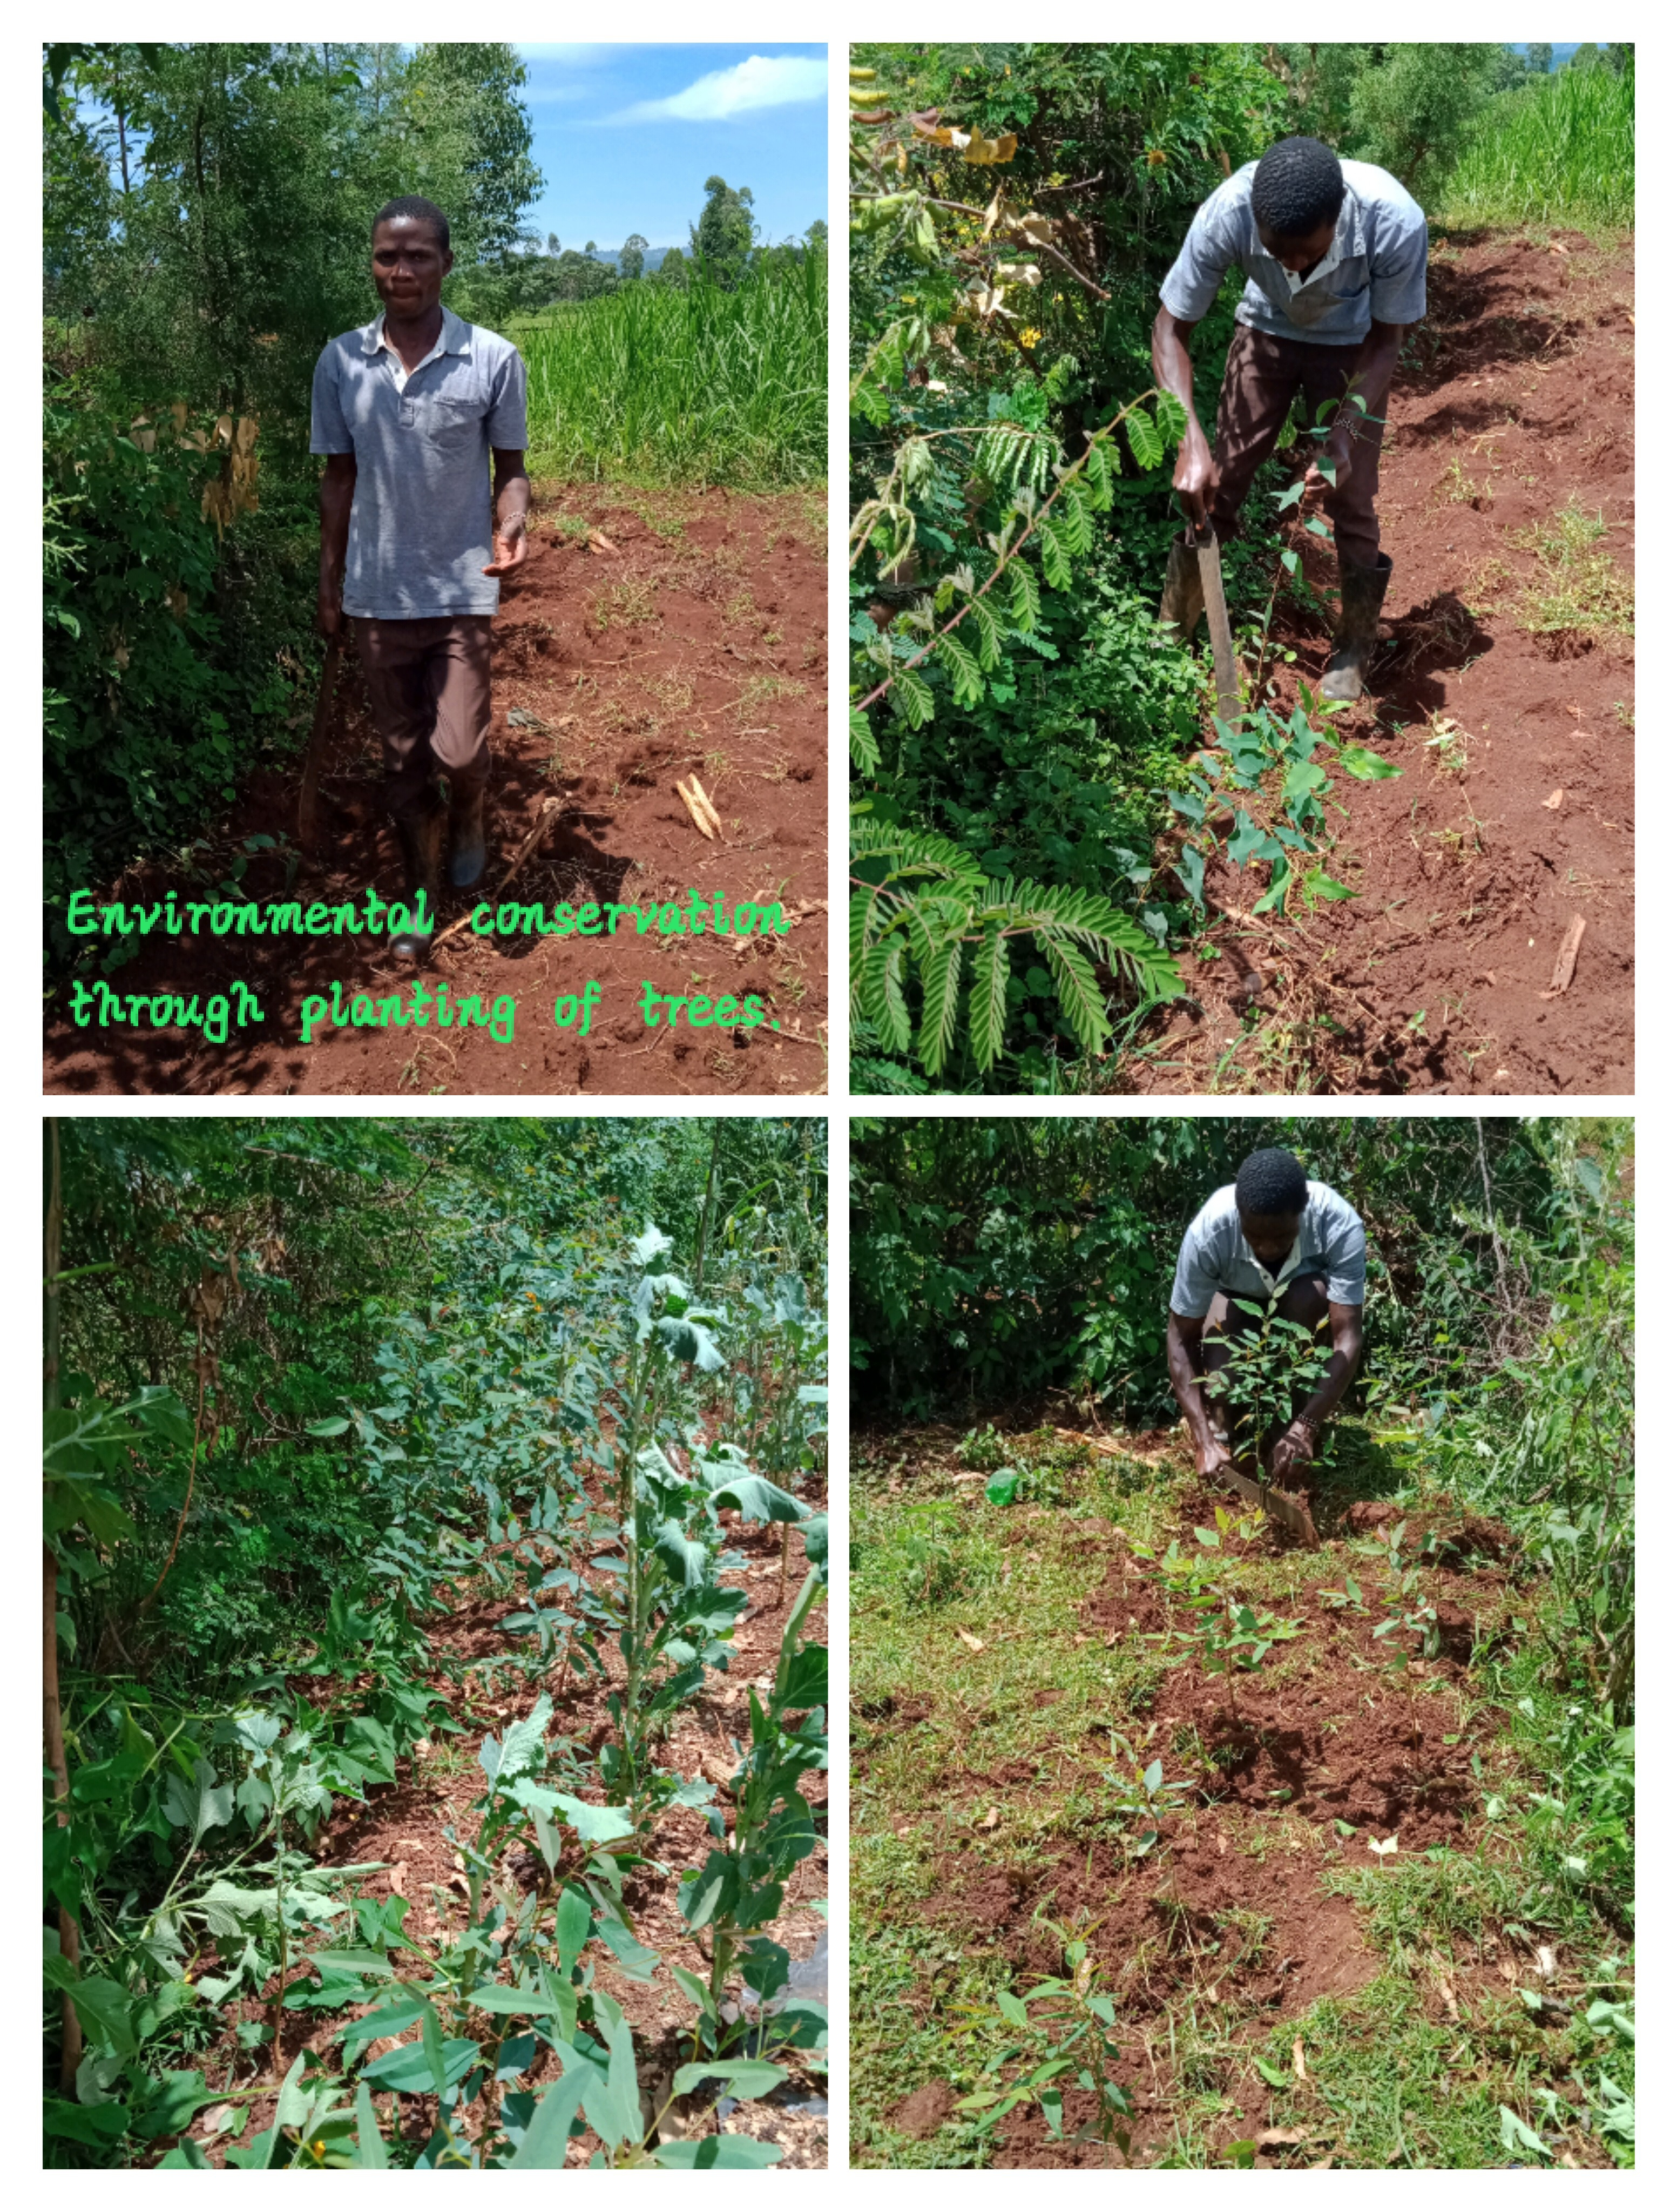 Environmental conservation by planting trees.